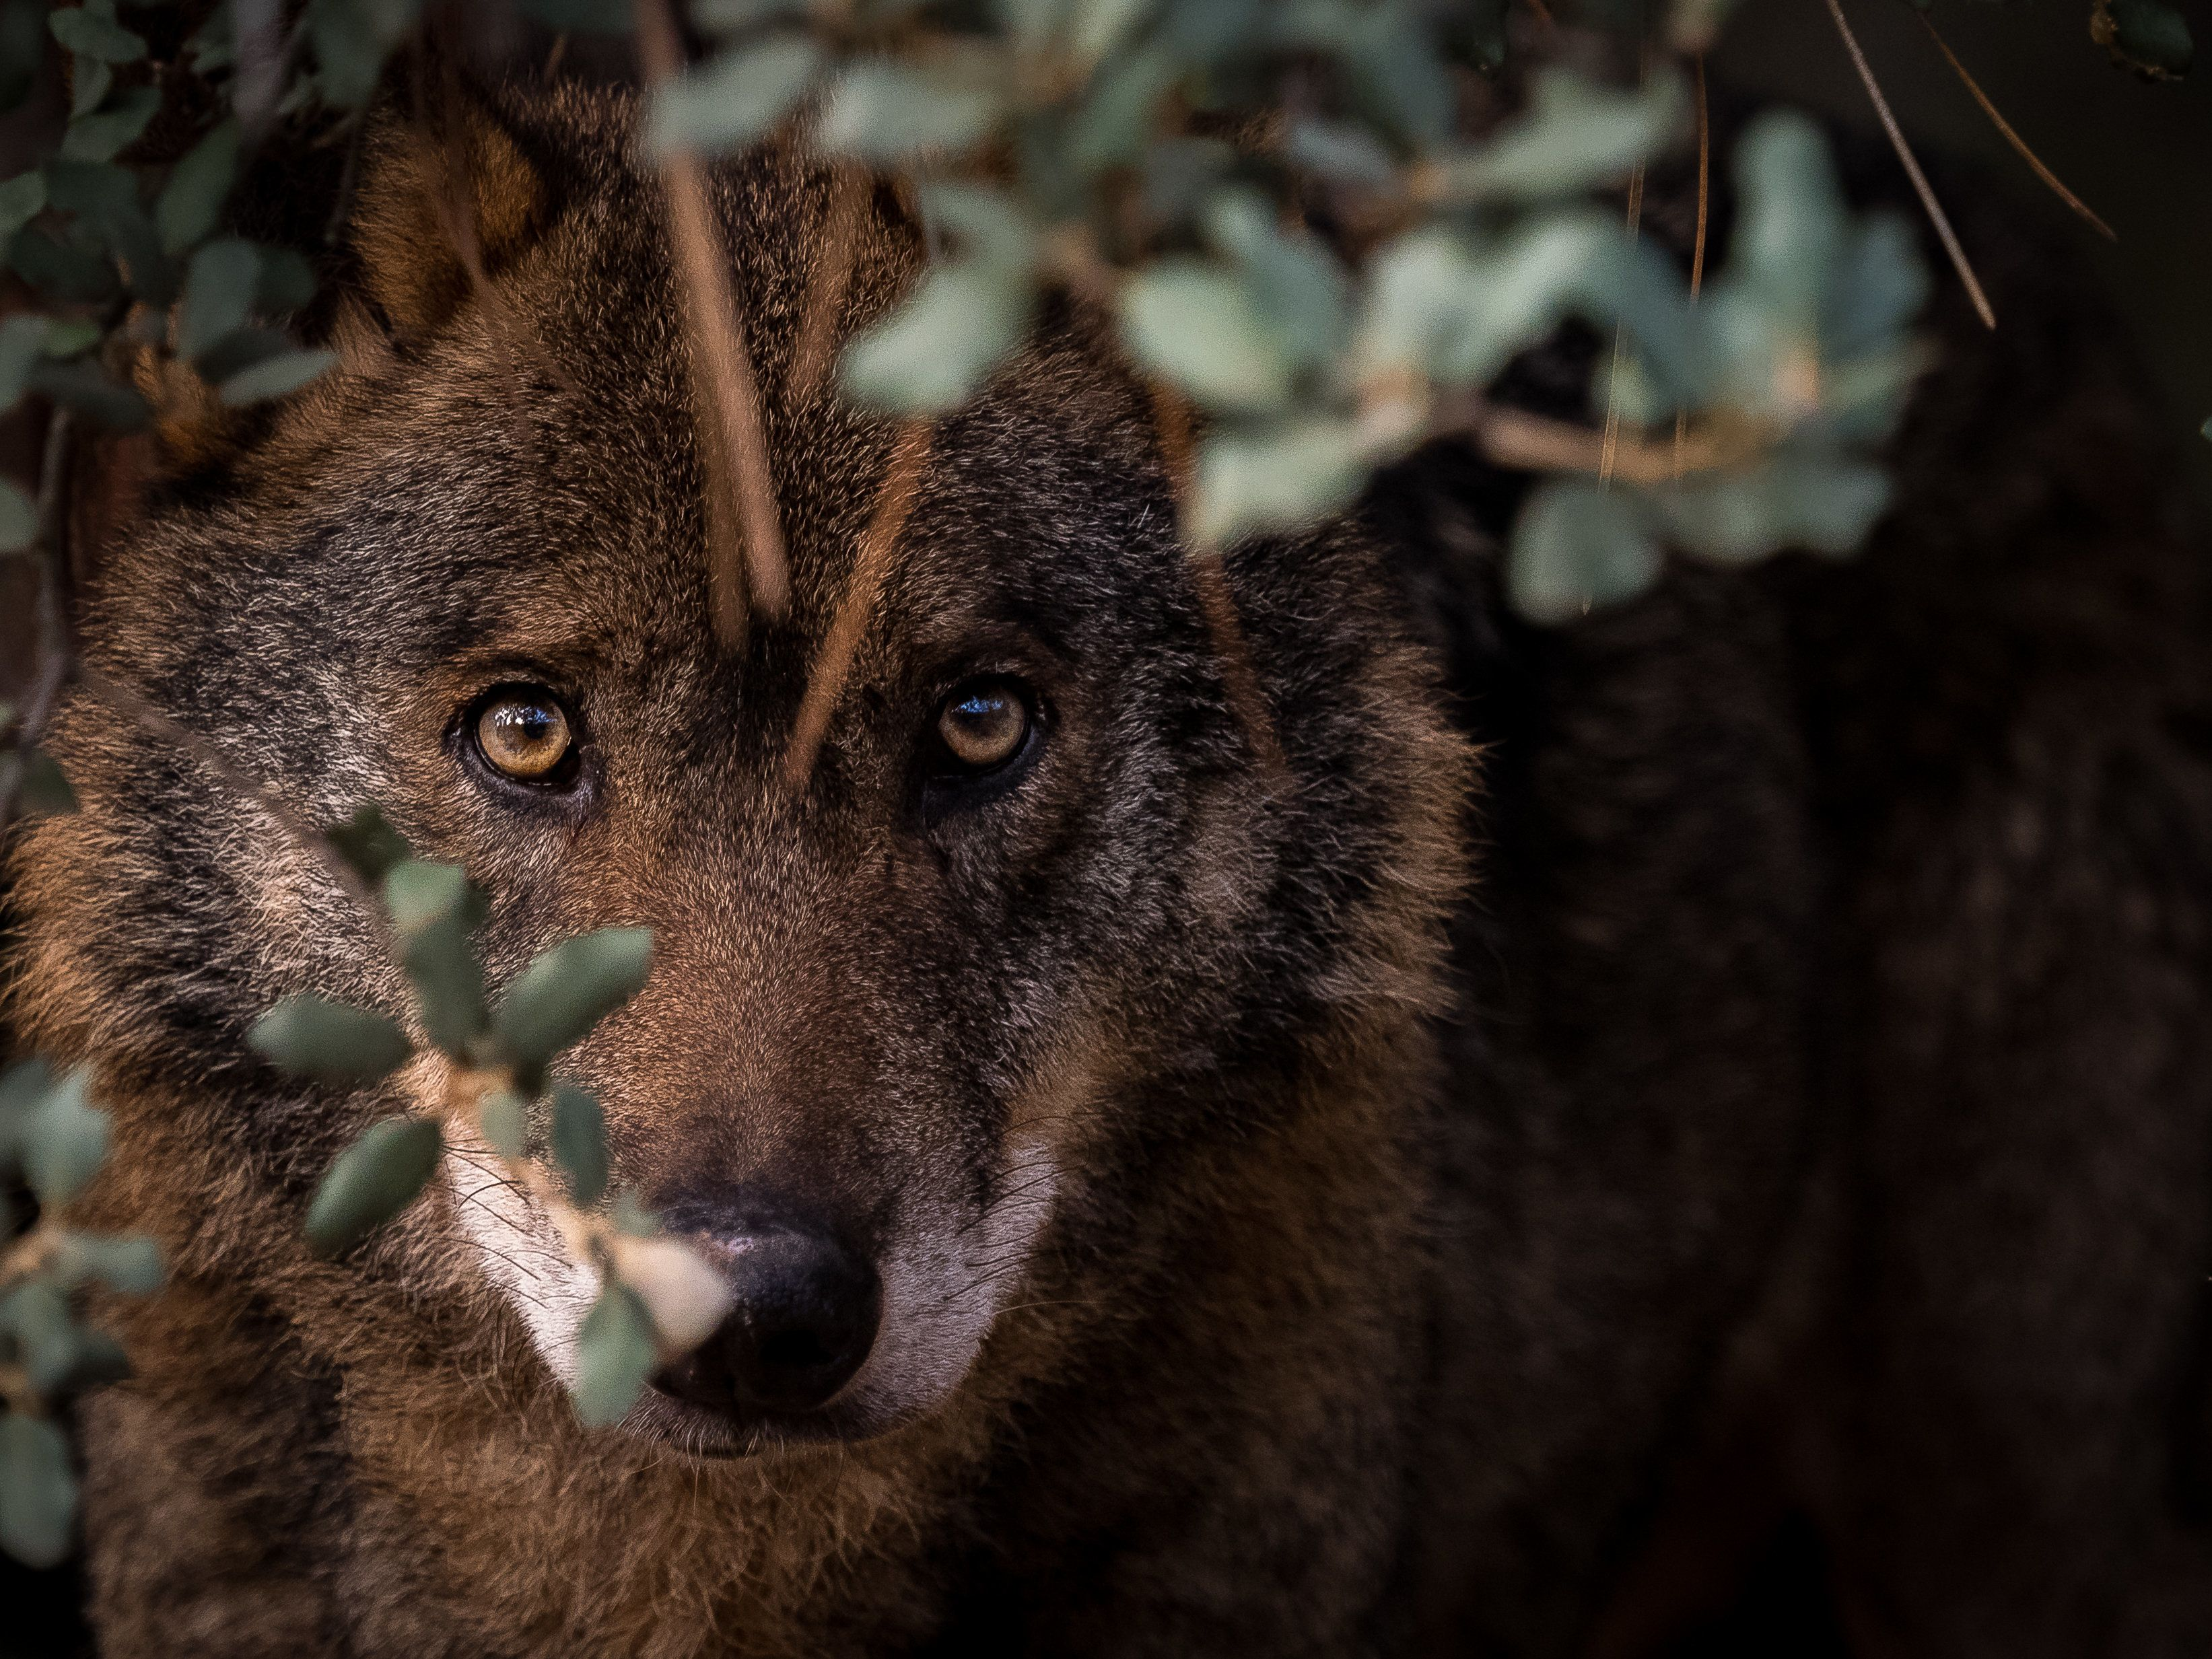 The Once Hated Wolf Could Now Save A Struggling Community